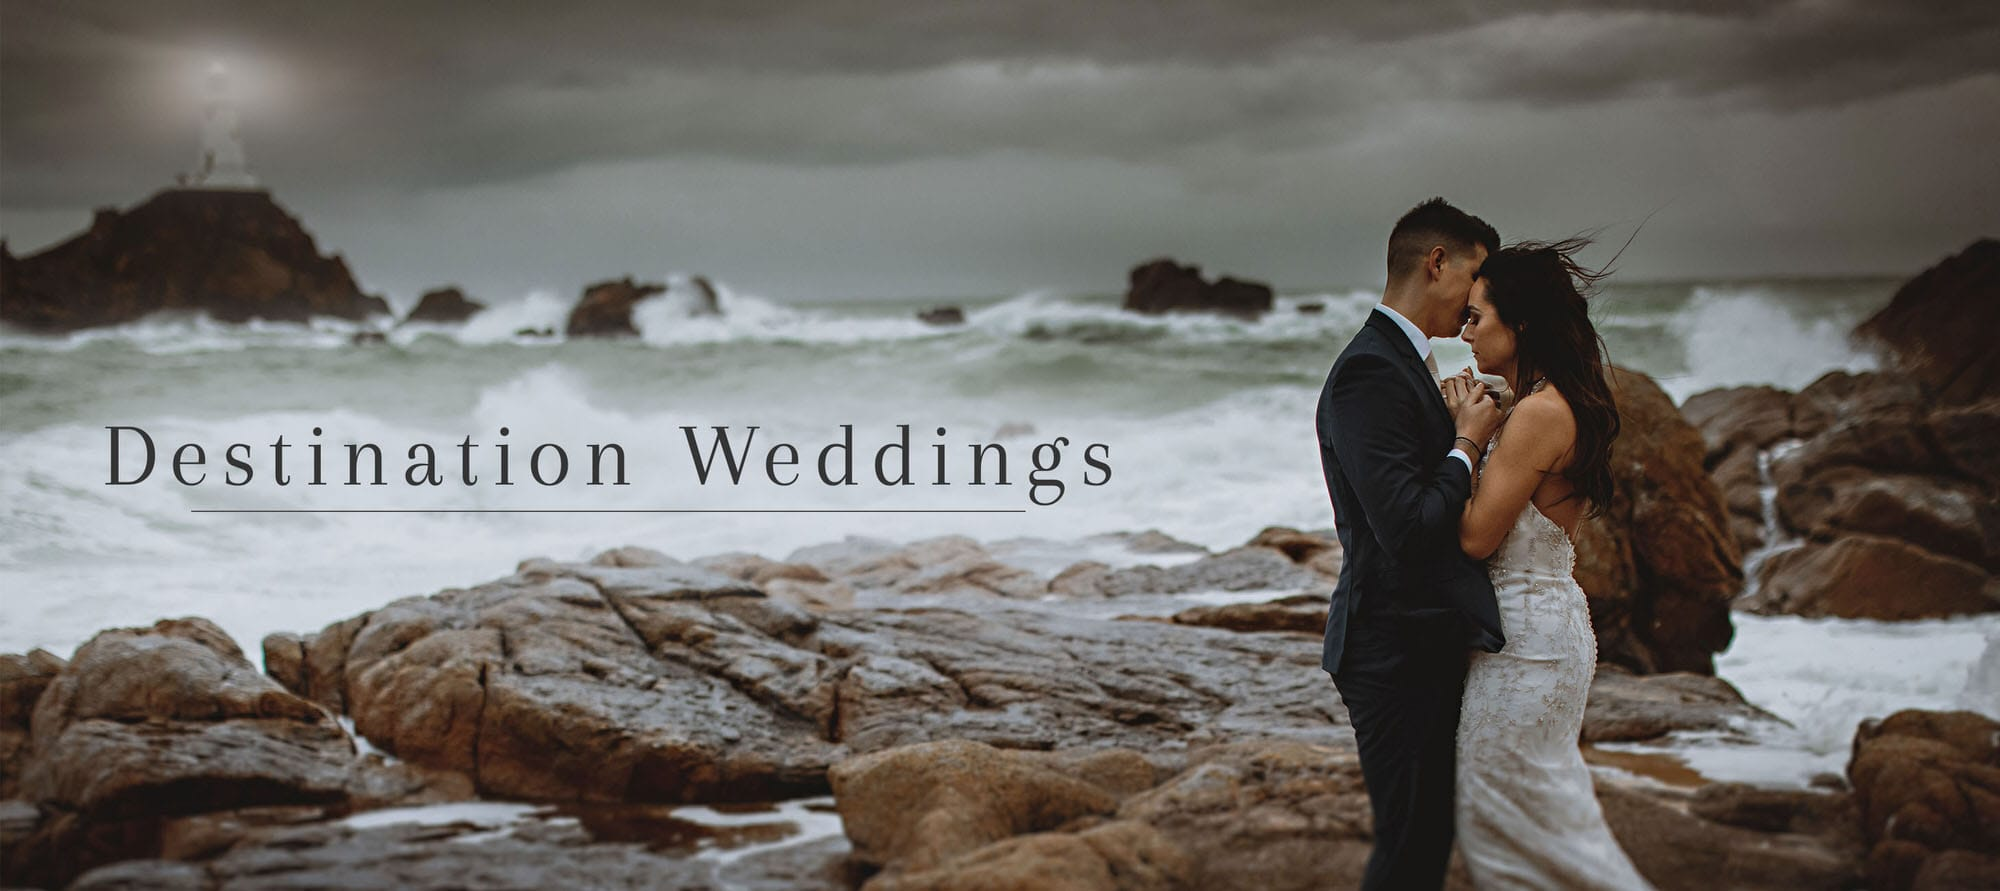 a bride and groom stood on rocks hugging by the storms seas